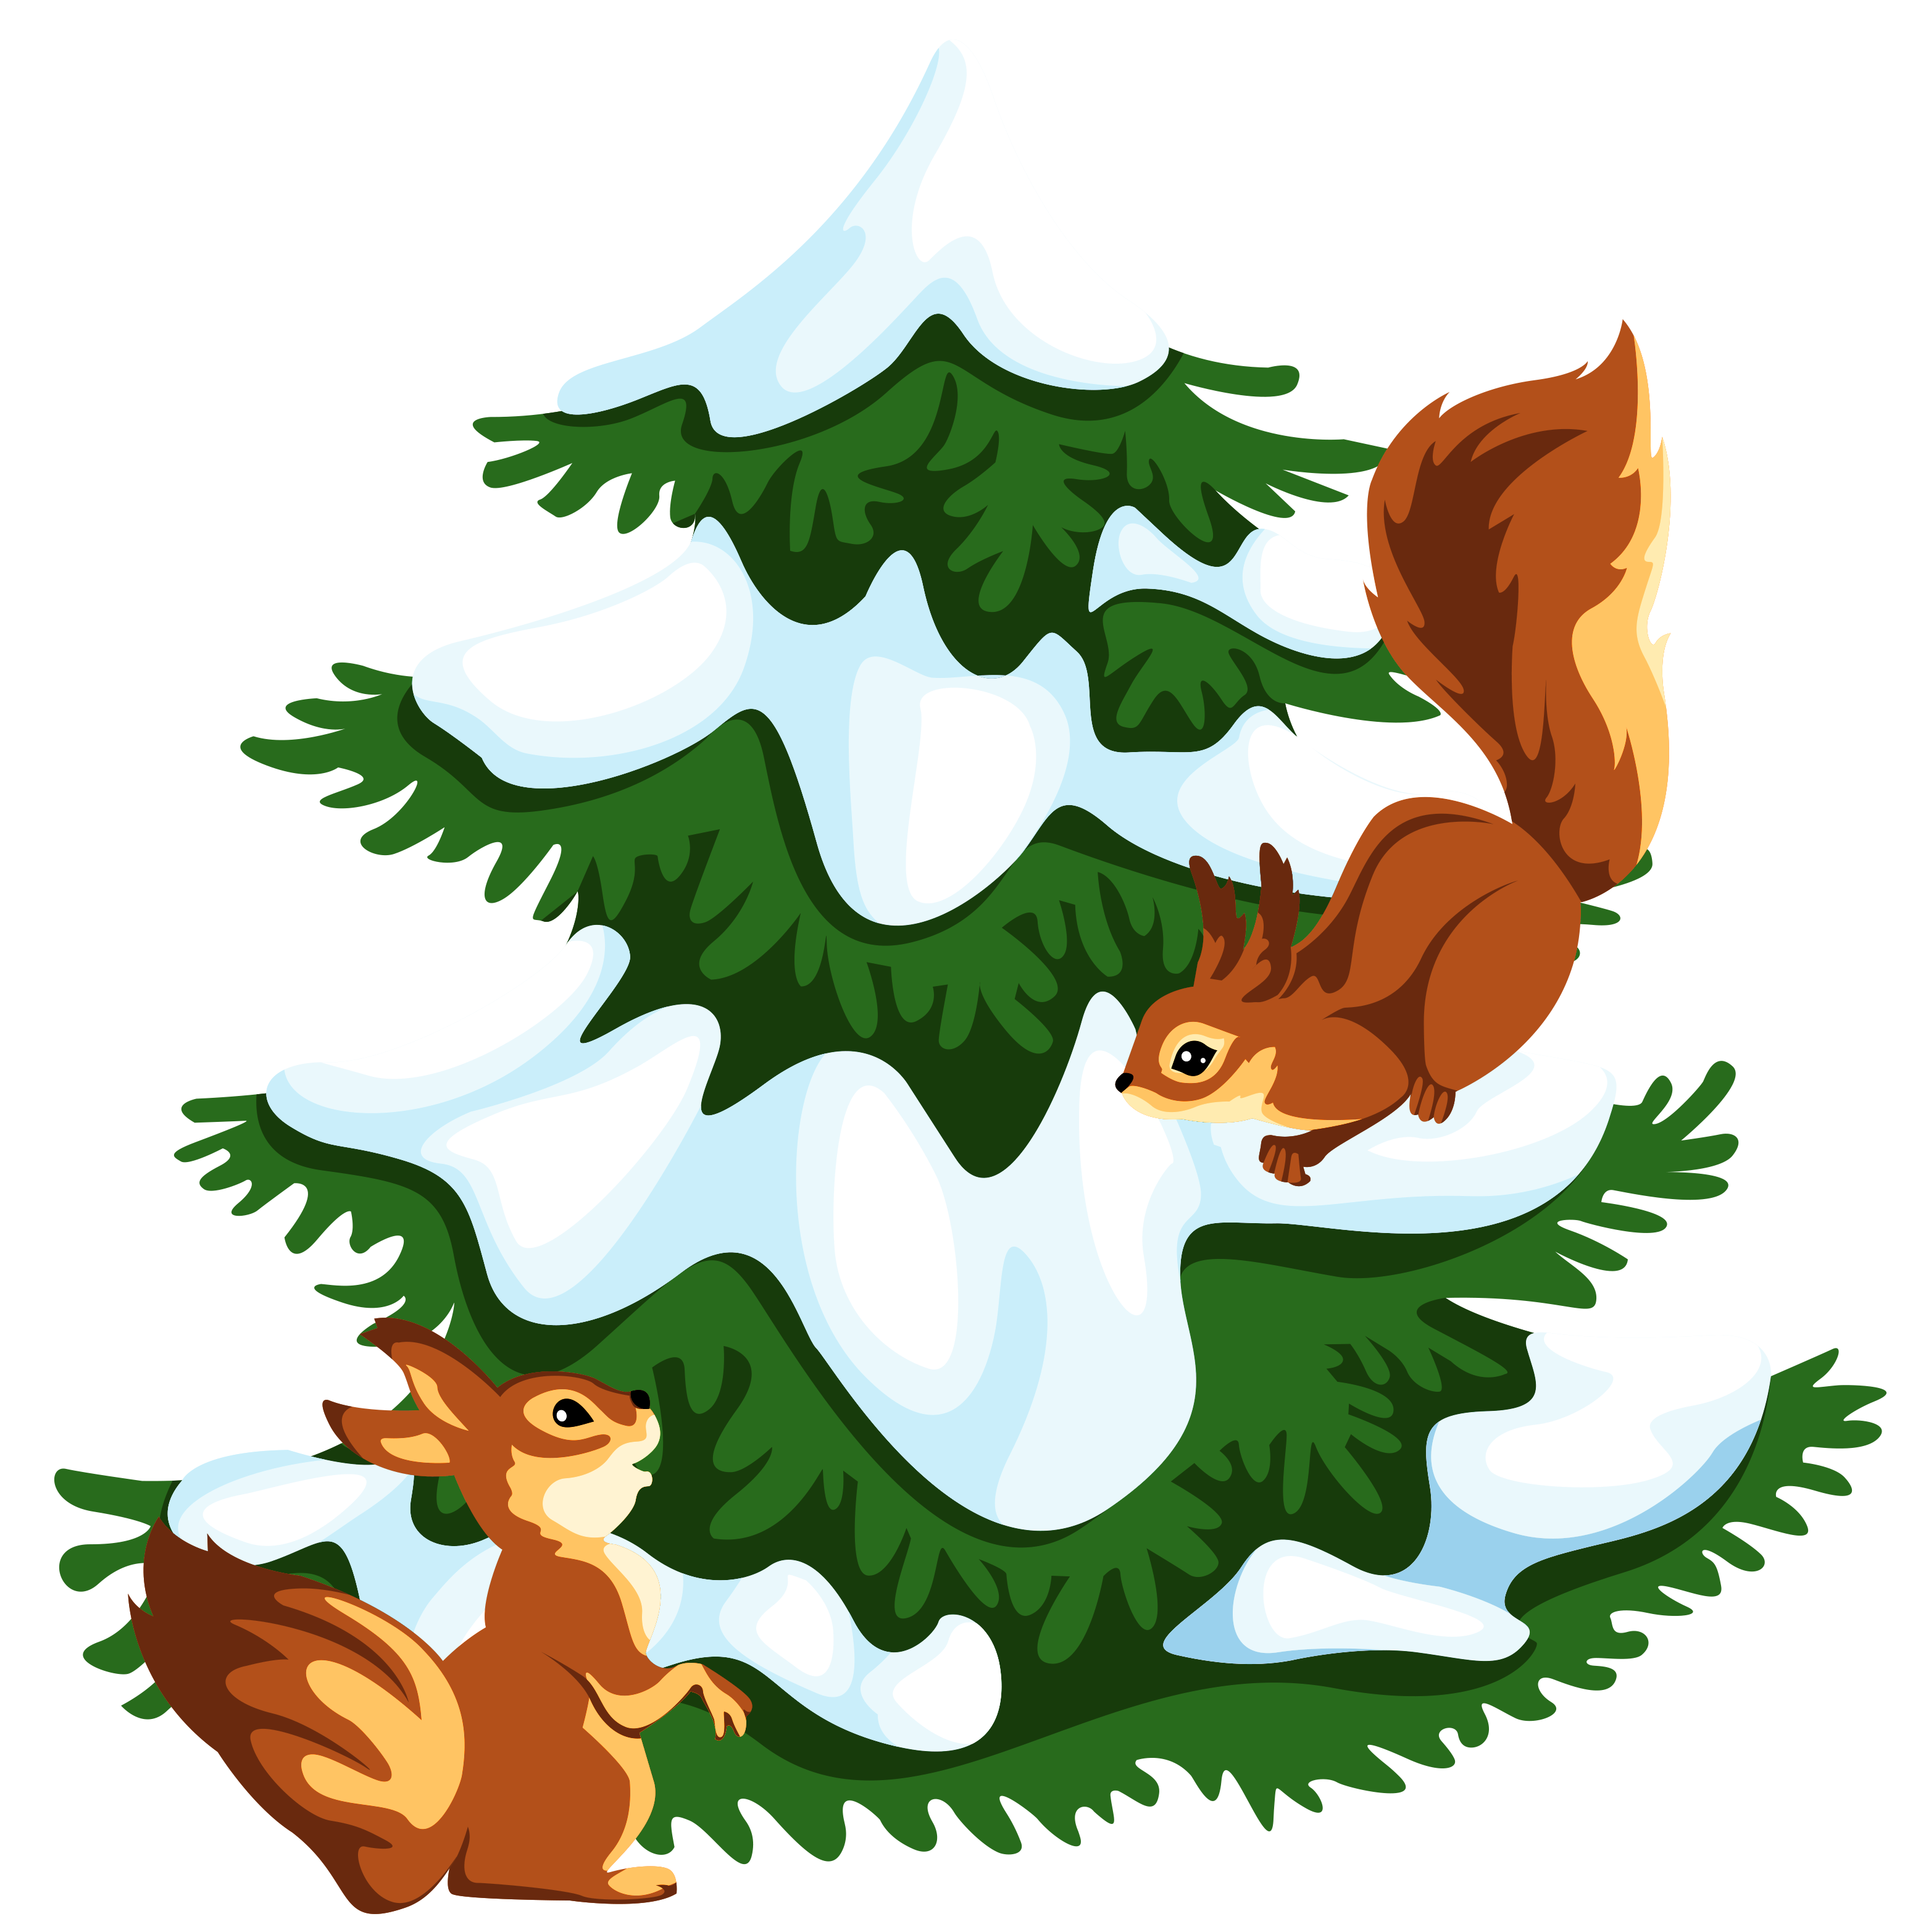 Figs squirrel forest tree clipart - Clipground